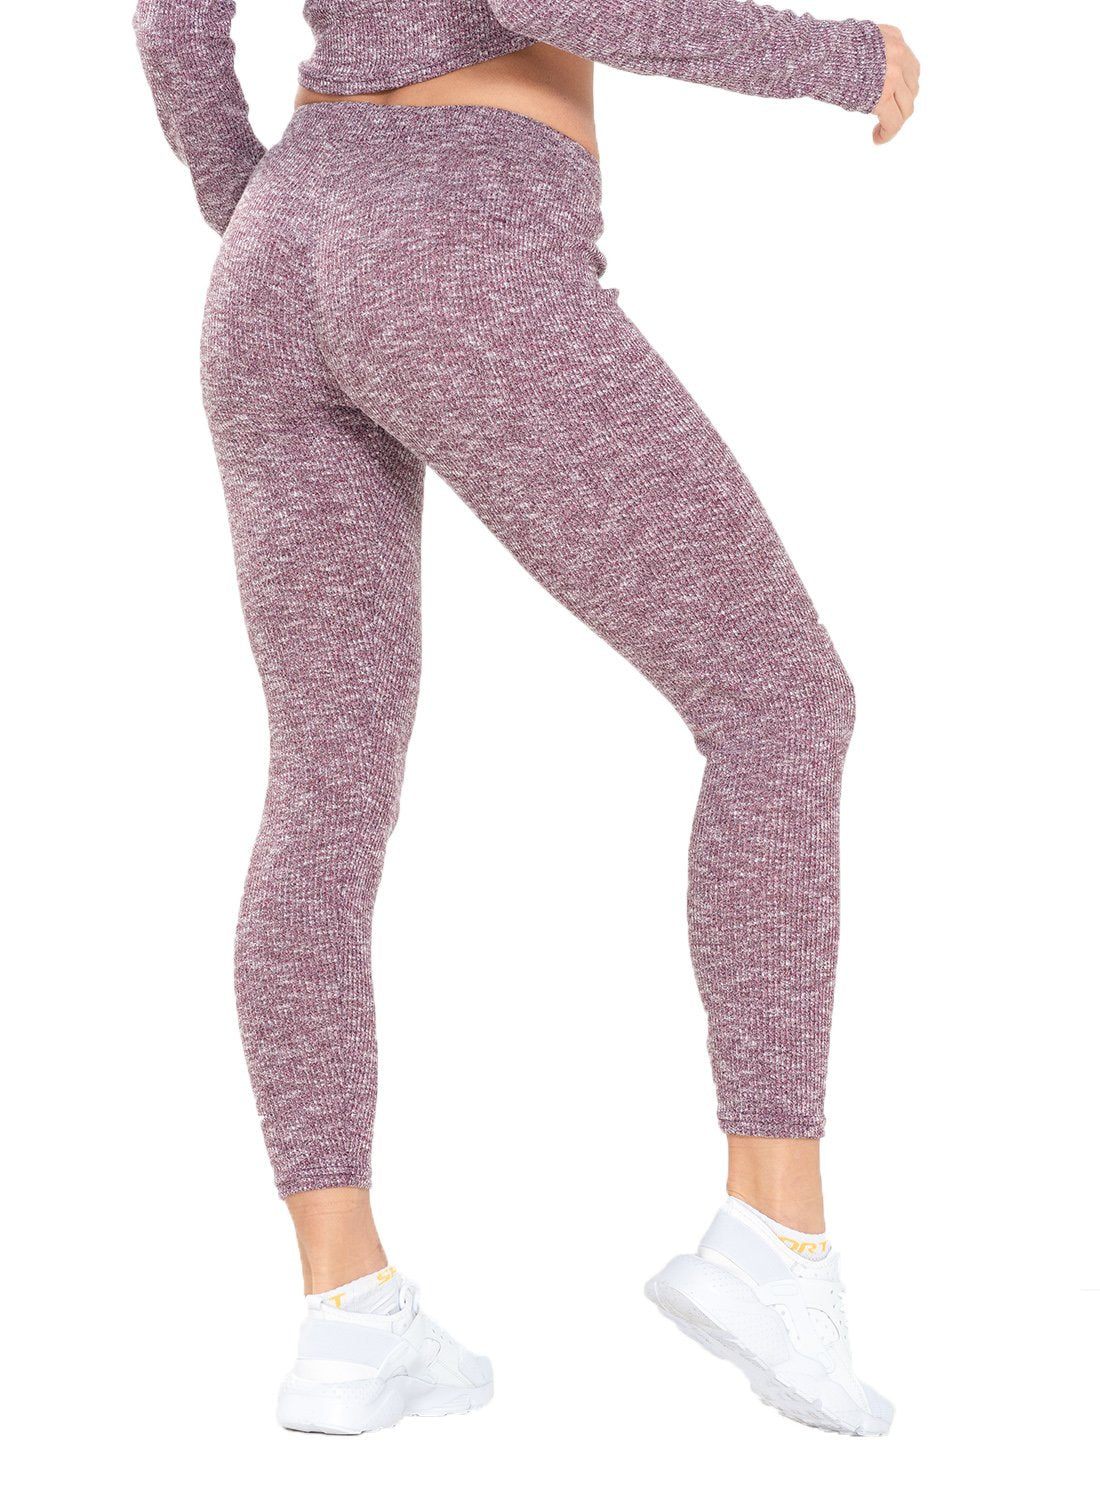 Knitted Comfortable Elastic Waistband Leggings-JustFittoo